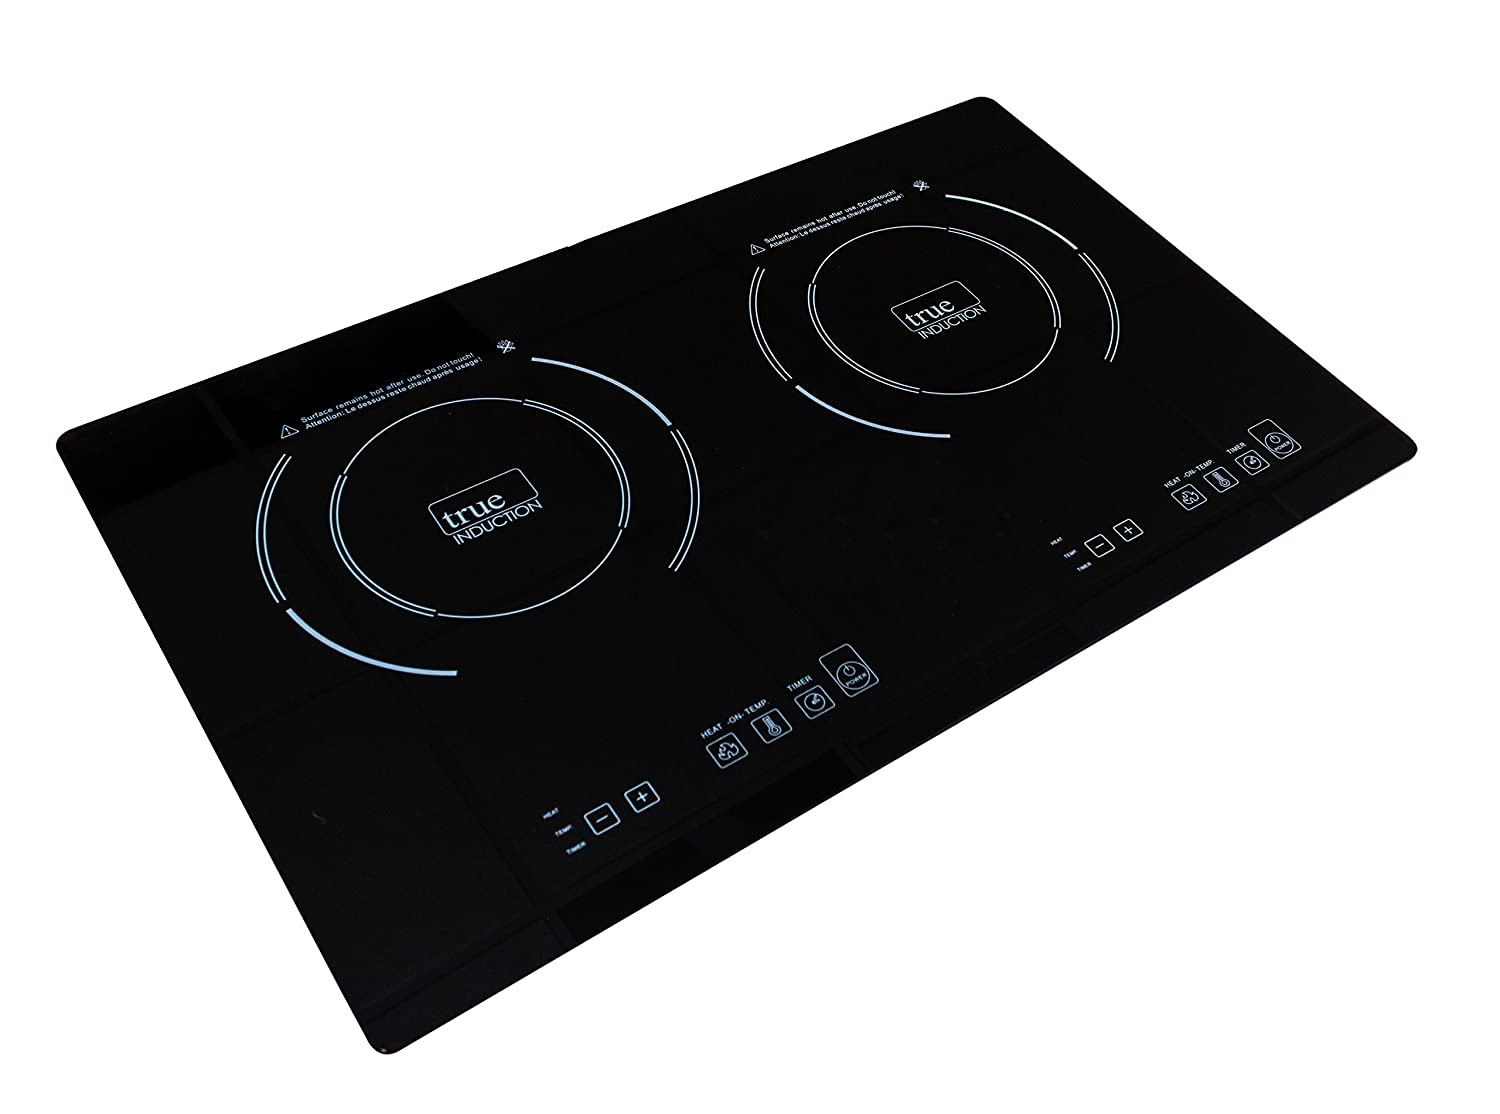 True Induction Ti 2b Counter Inset Double Burner Low Price Cookerb3 View Circuit Board Cooker Cooktop 120v Black Sports Outdoors